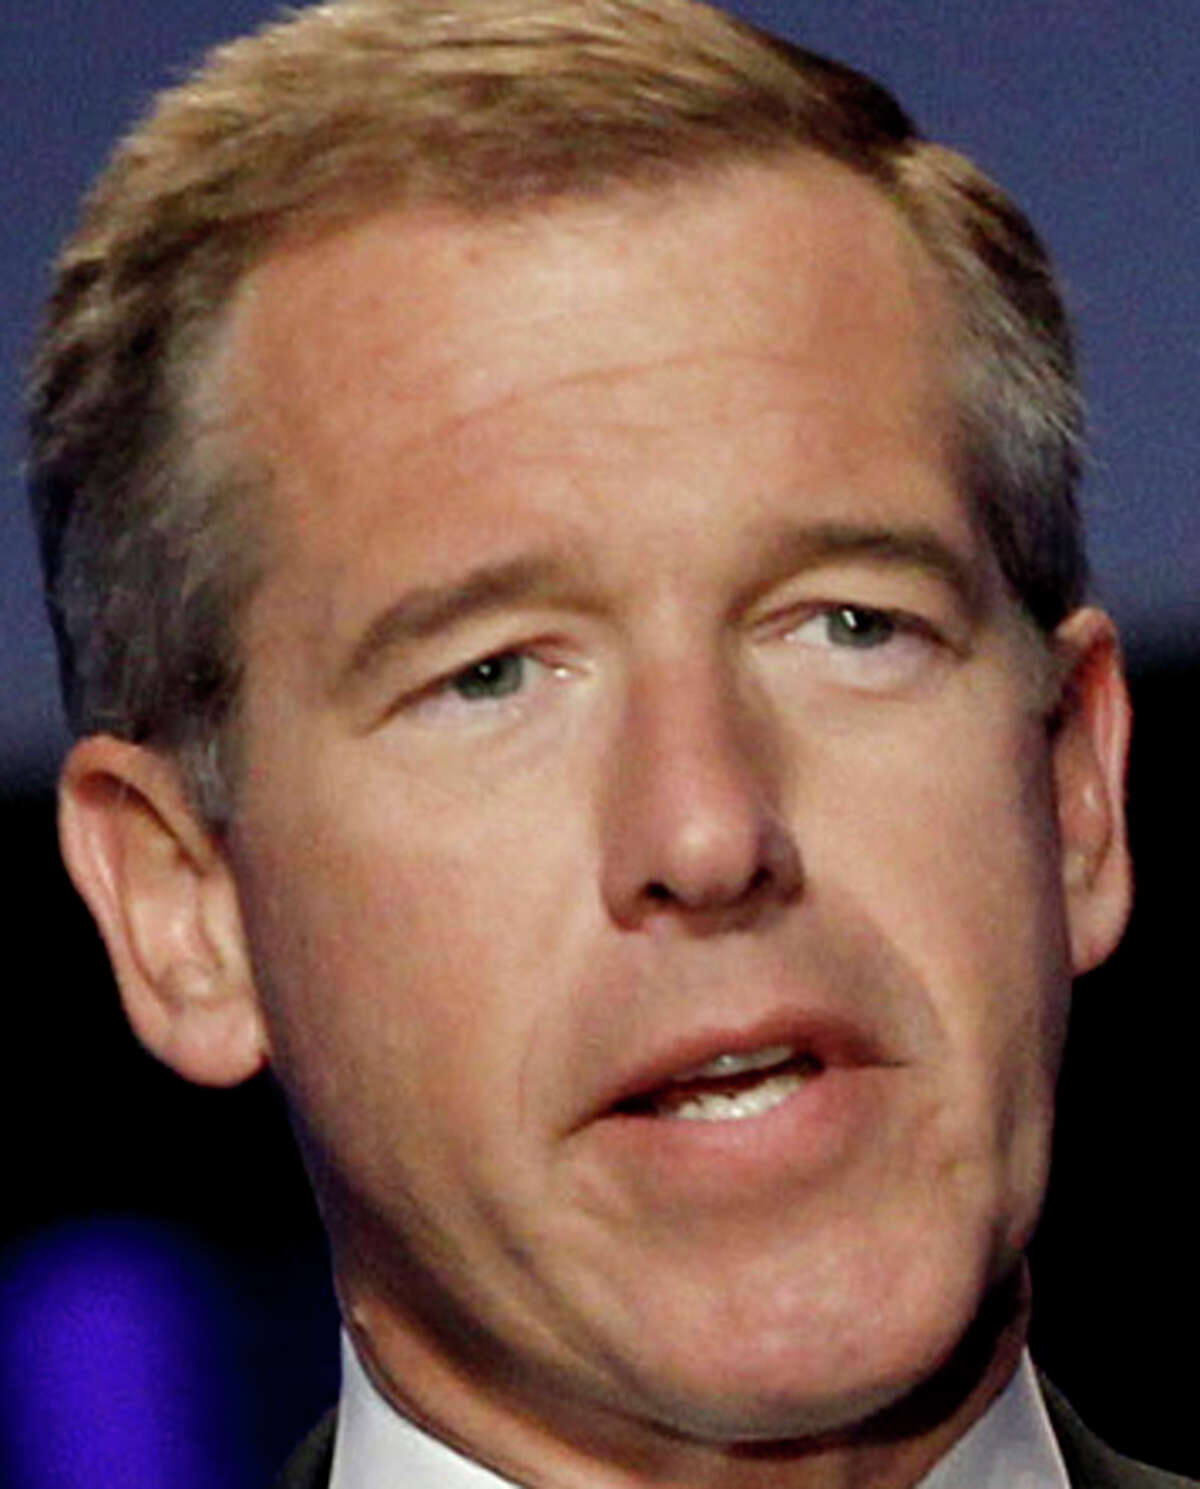 Brian Williams is taking time off from NBC.